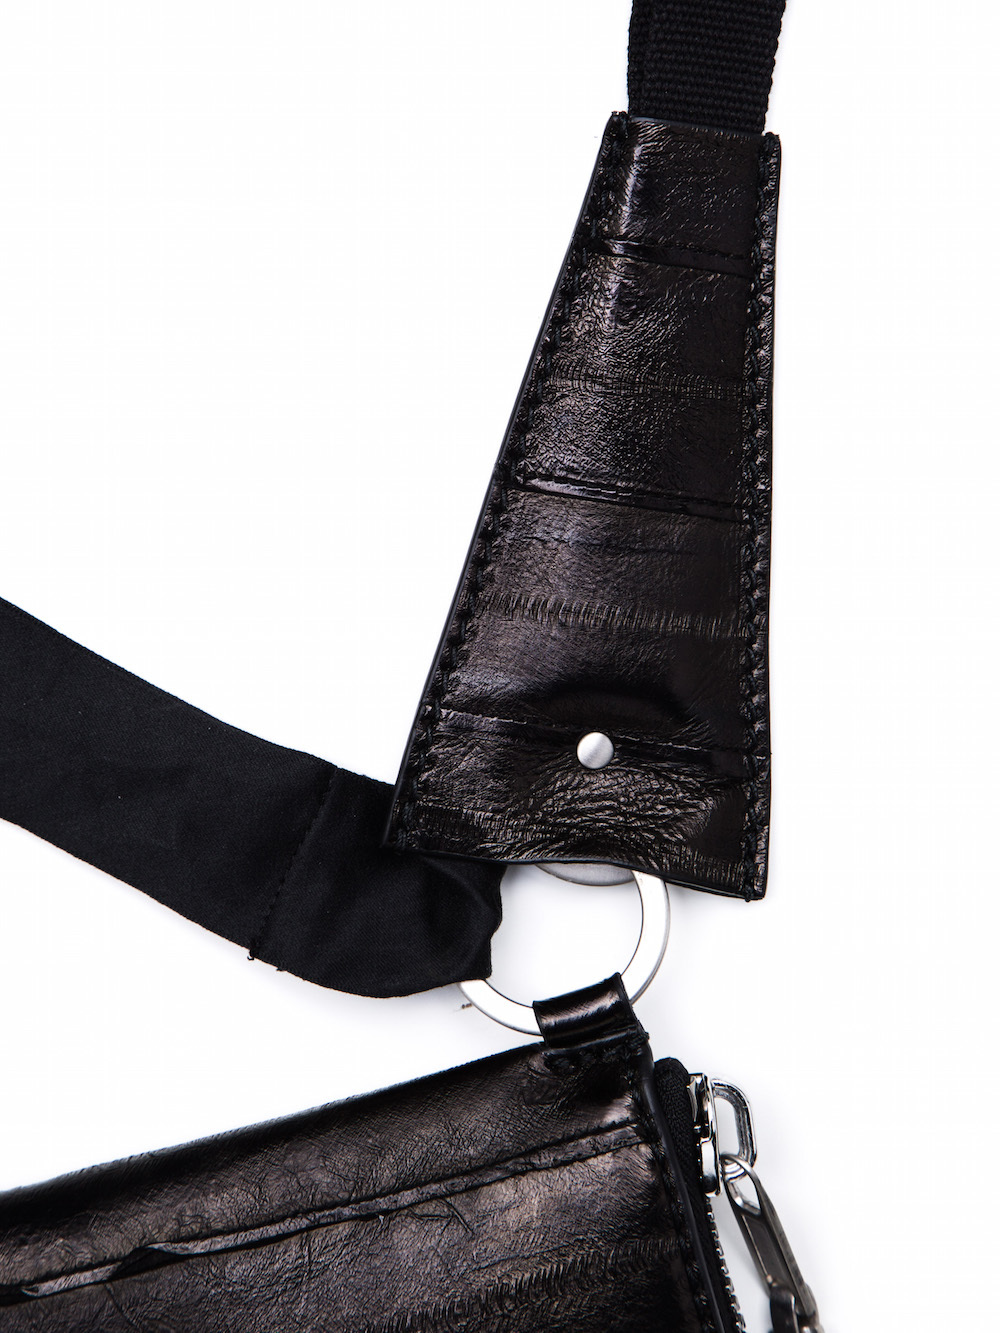 RICK OWENS NECK WALLET IN BLACK LACQUERED EEL SKIN IS RECTANGULAR